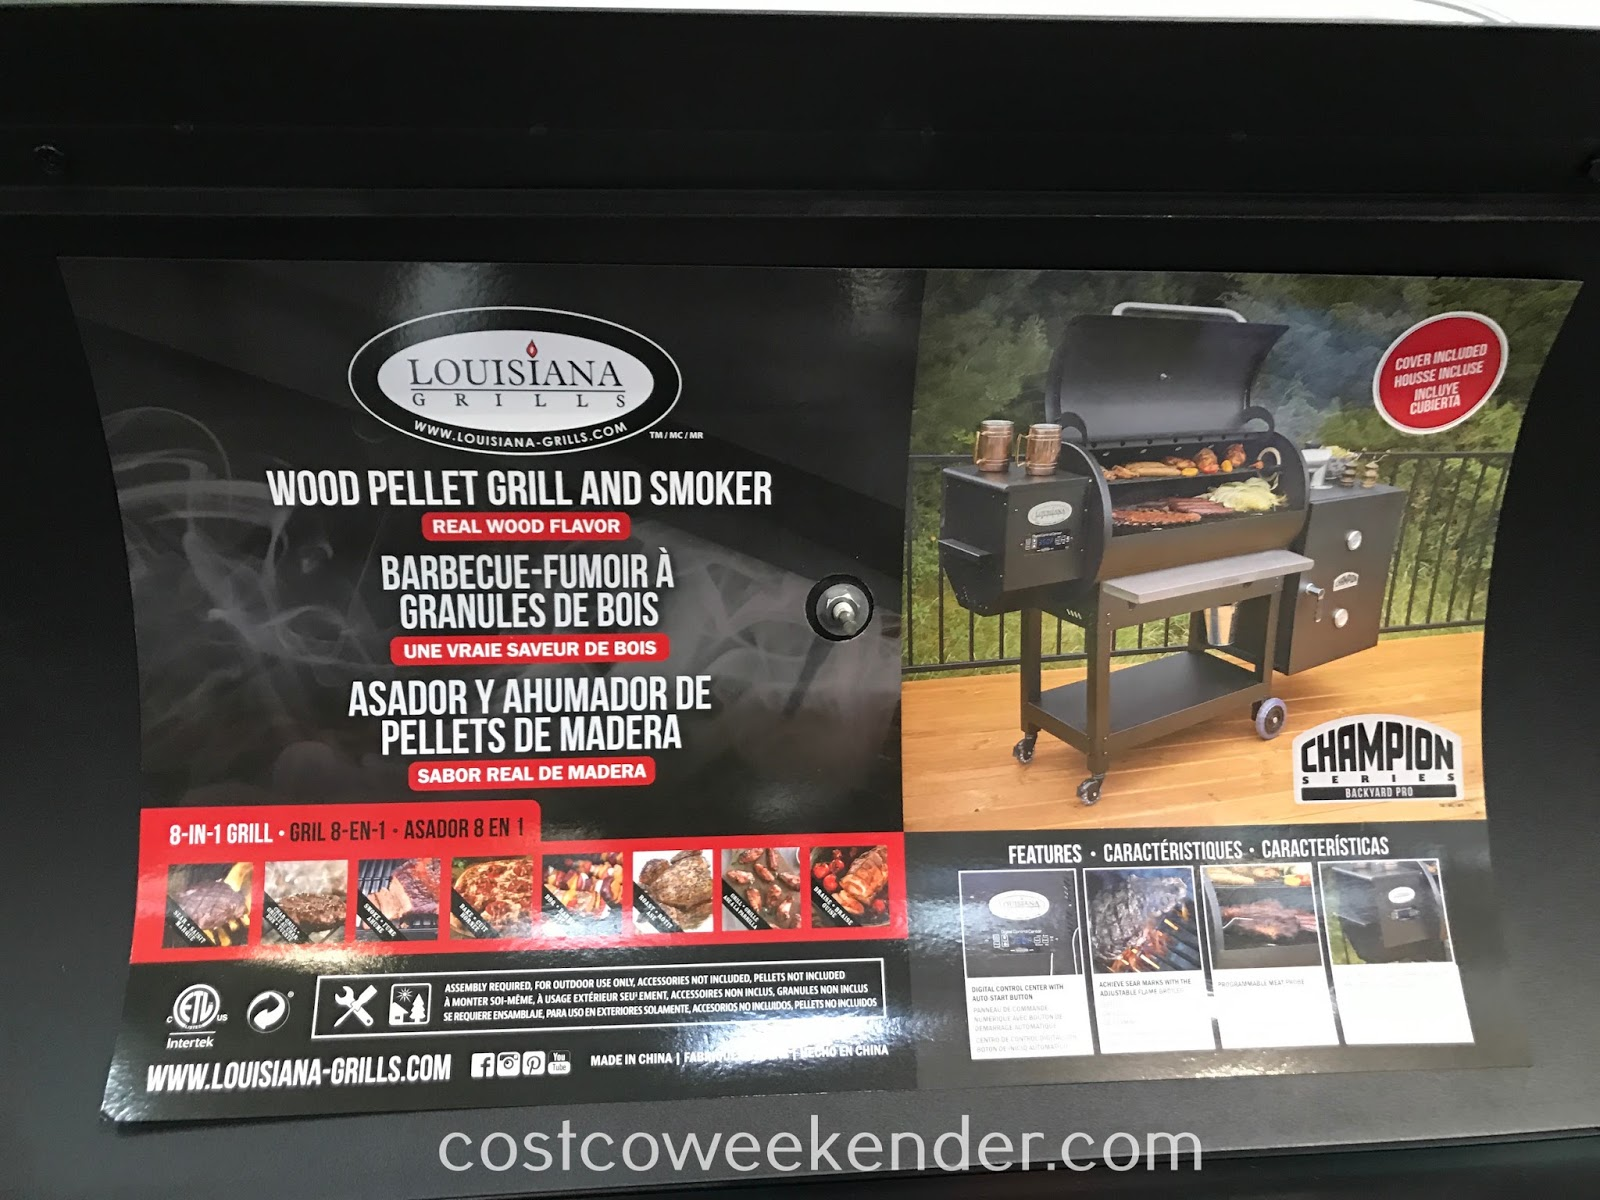 Costco 1500153 - The Louisiana Grills Wood Pellet Grill and Smoker opens up a whole new world to outdoor cooking